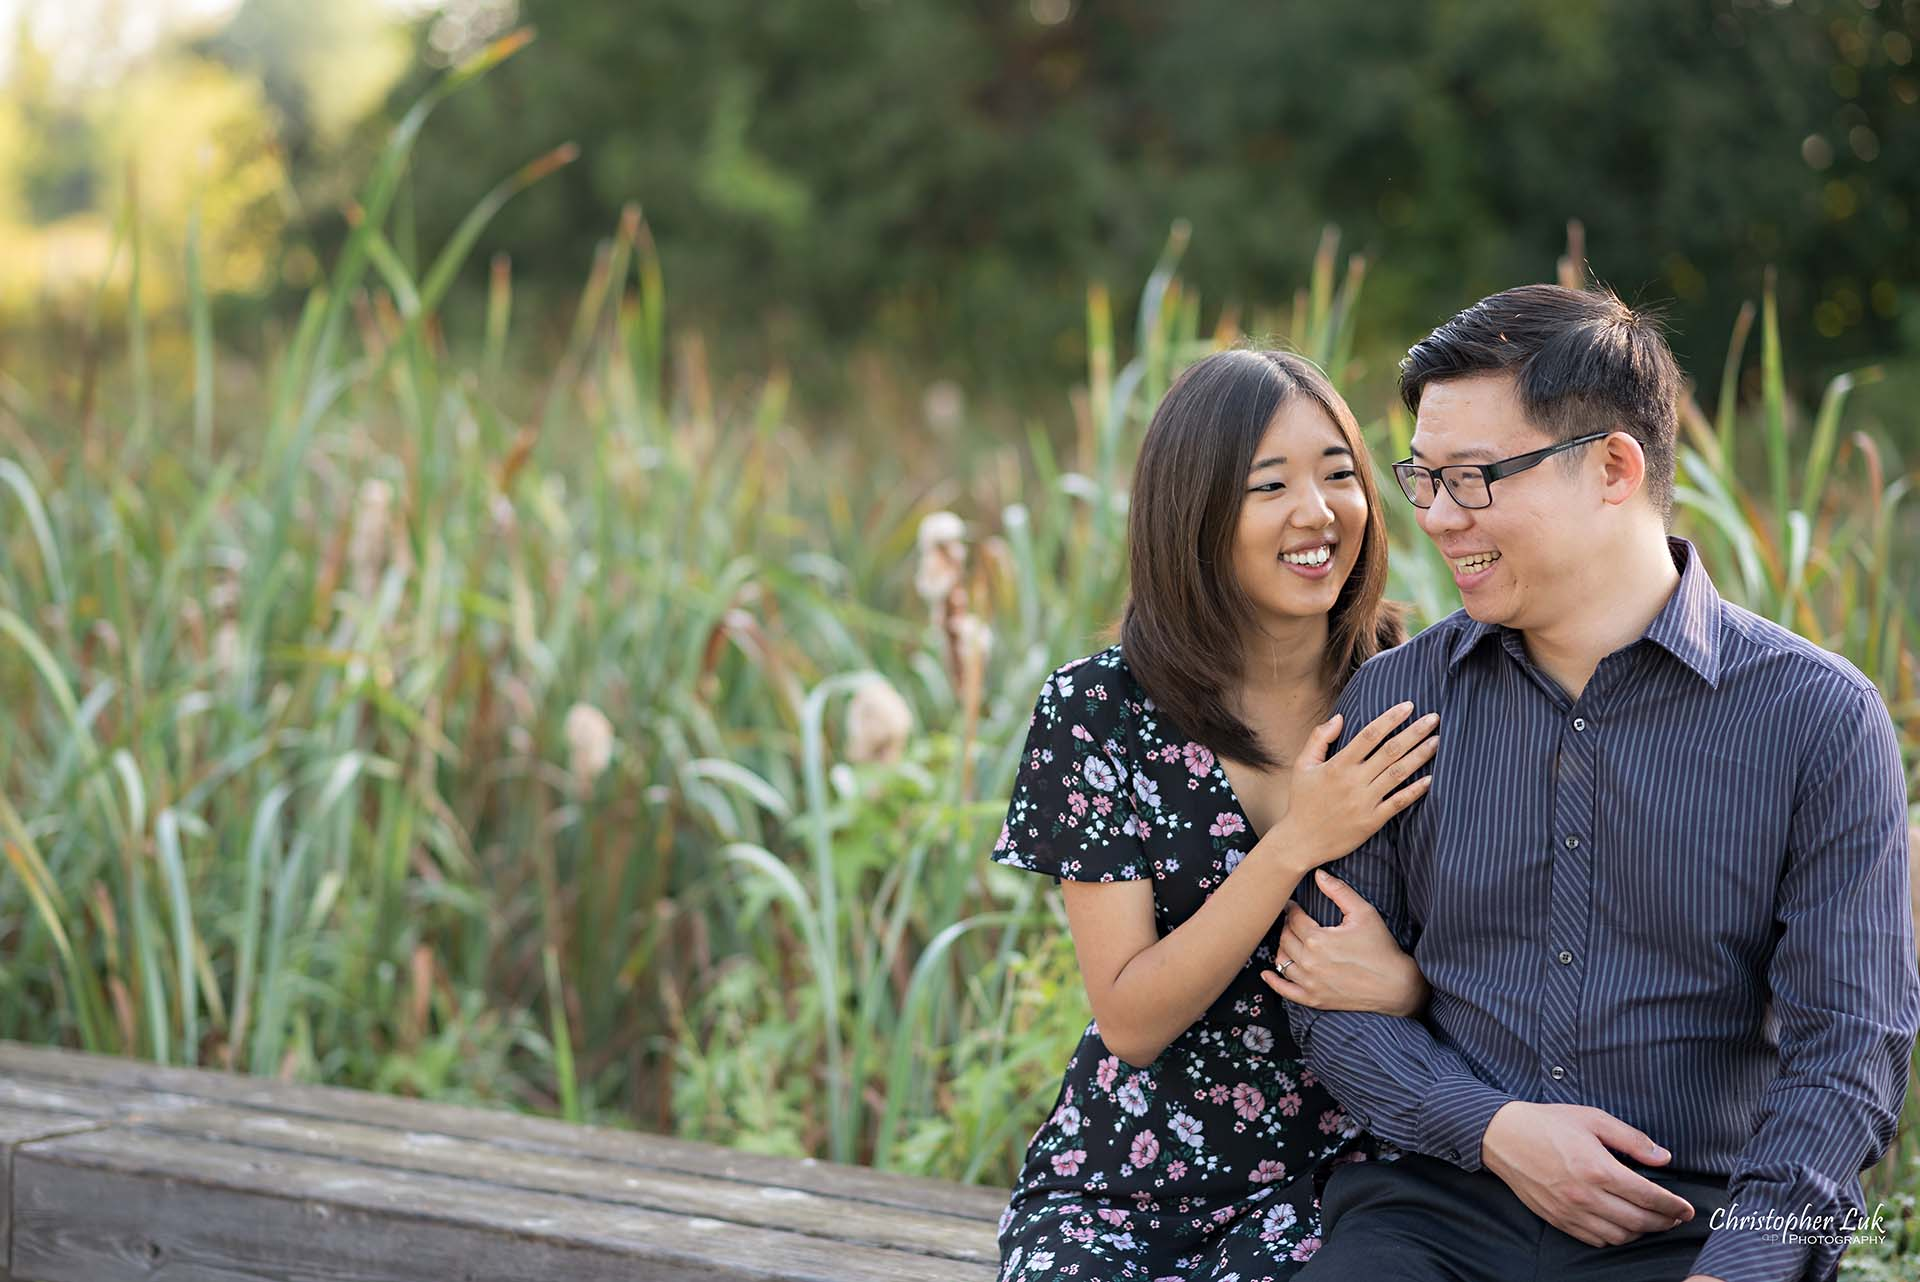 Christopher Luk Toronto Wedding Photographer - Richmond Hill Markham York Region Conservation Area Engagement PreWedding Chinese Korean - Natural Candid Photojournalistic Bride Groom Marsh Bench Hug Smile